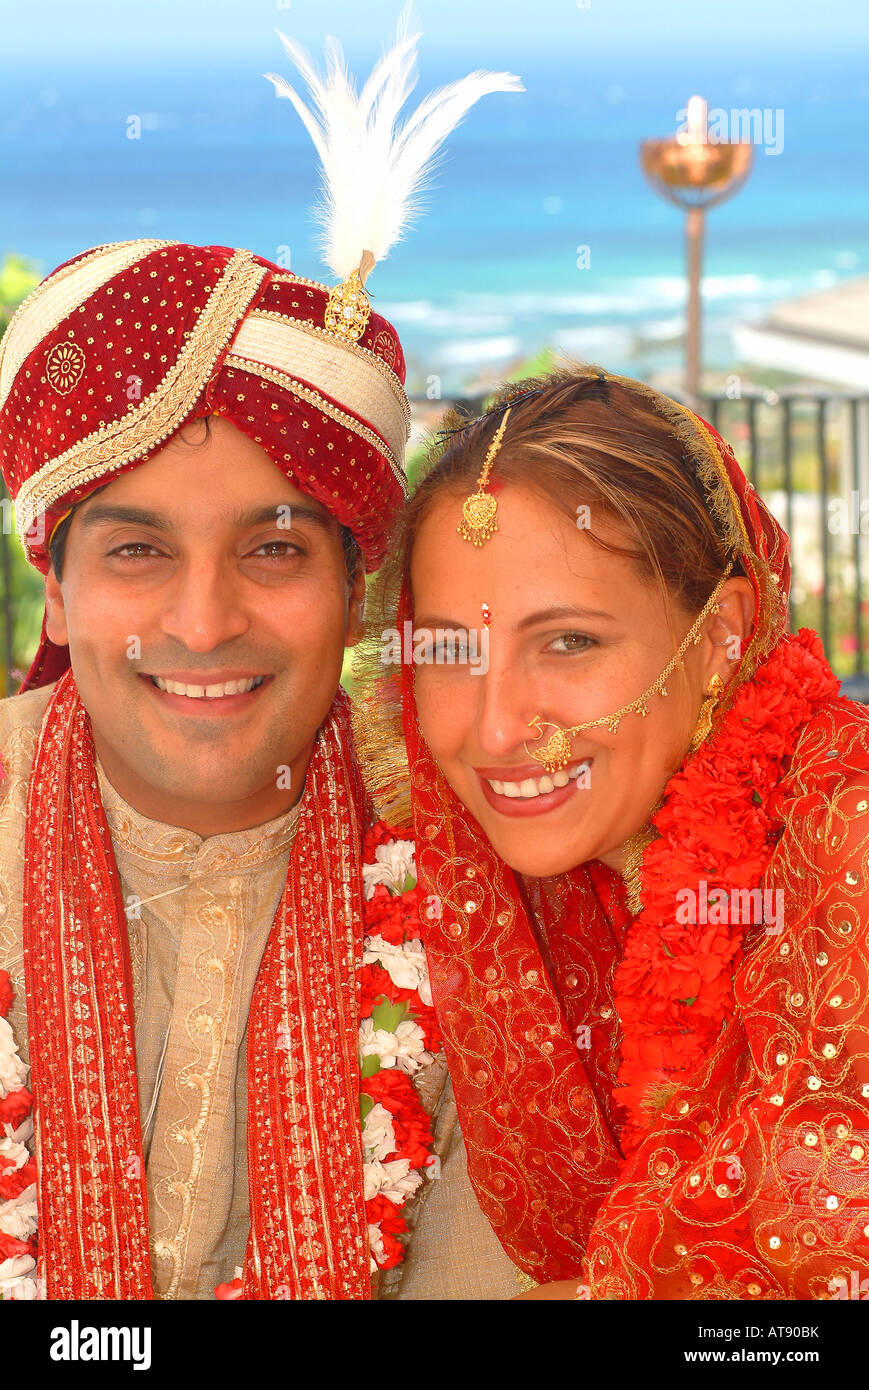 Tradditional Hindi wedding with groom wearing carnation flowers and